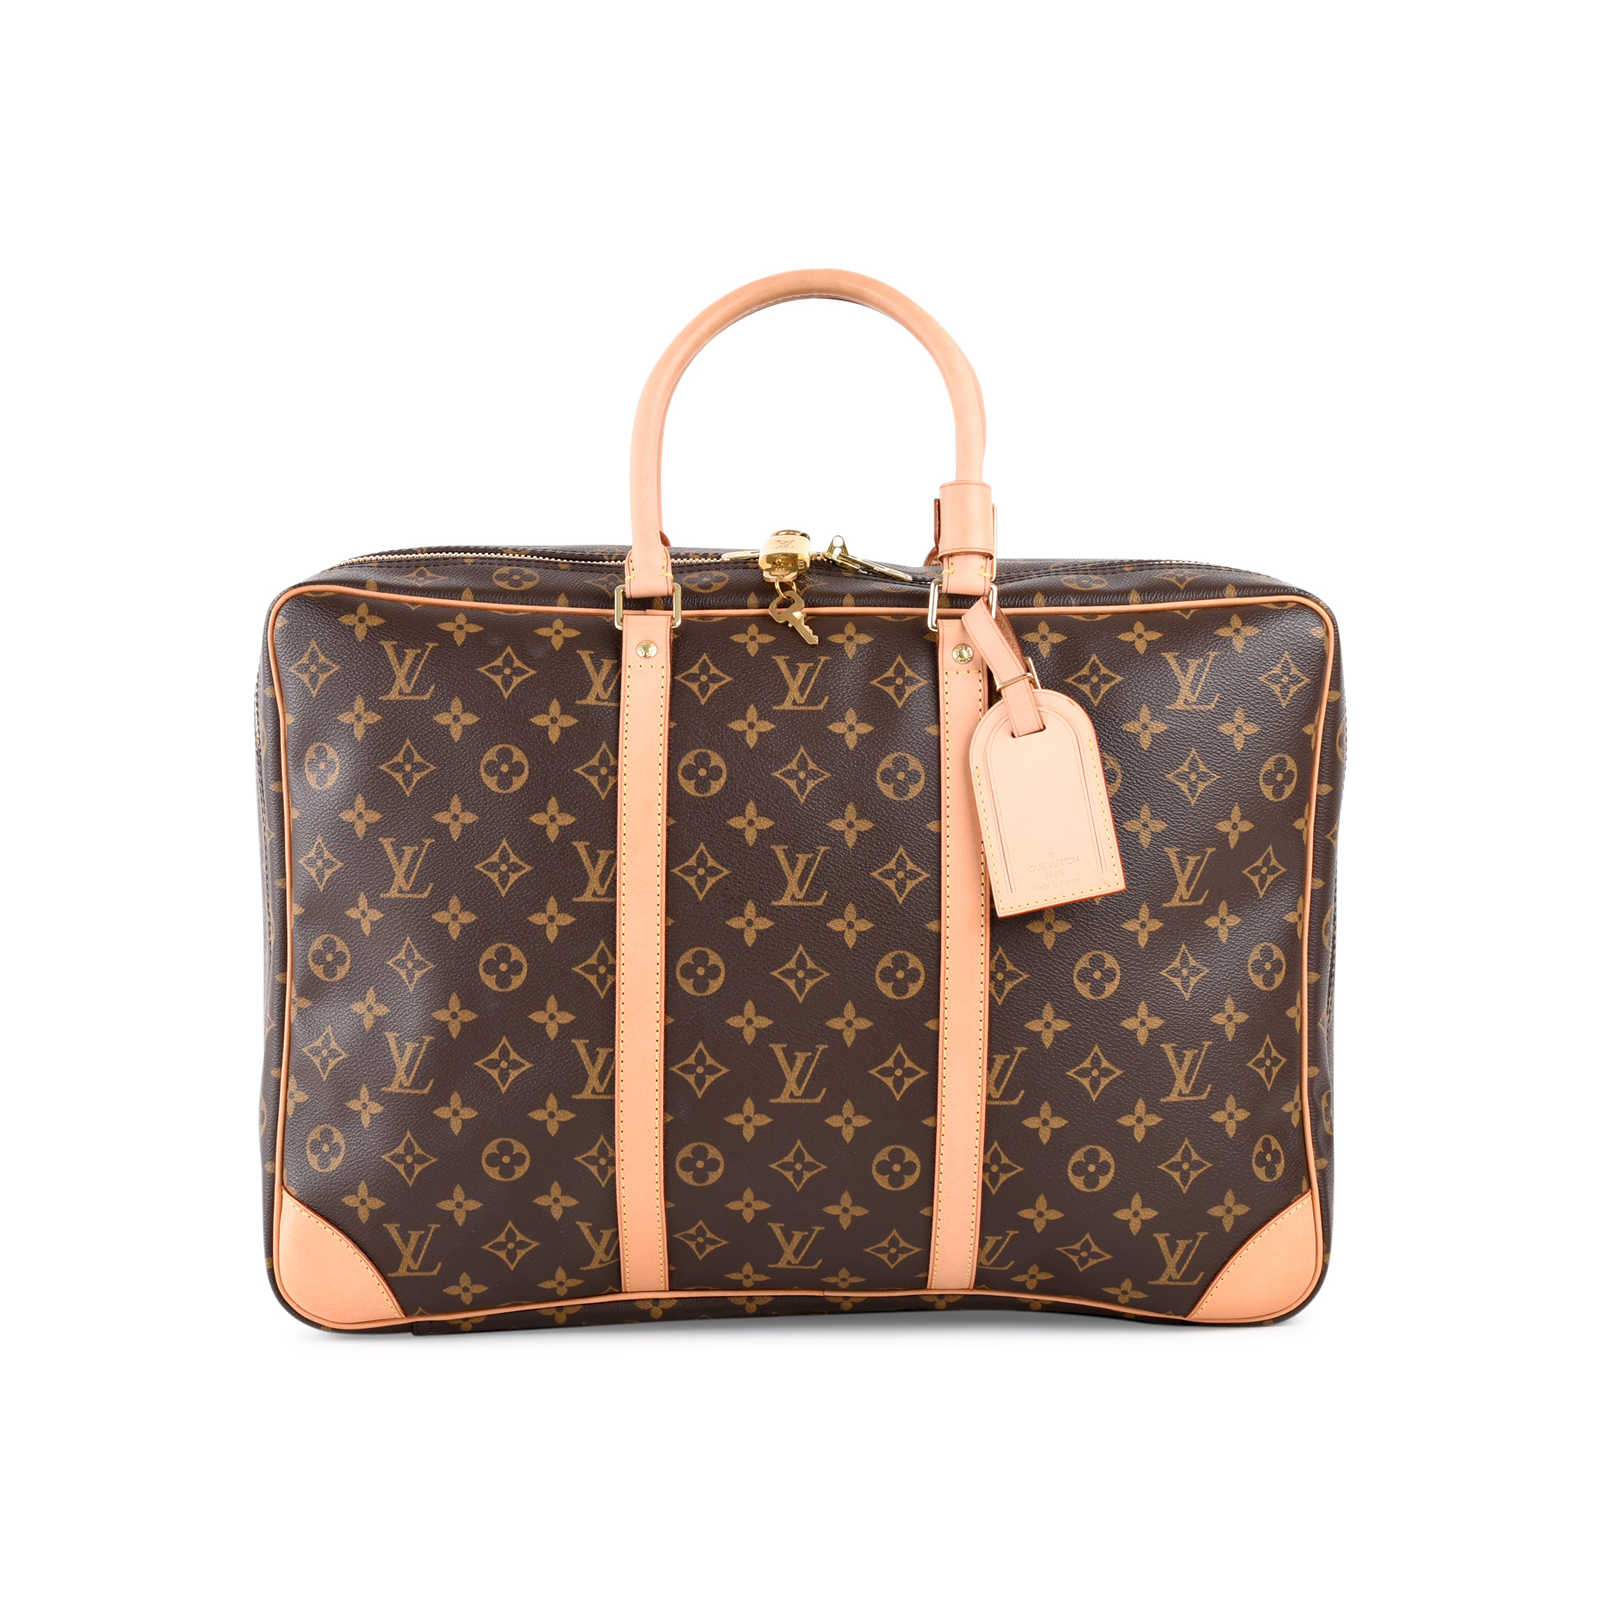 37733d33ee4f Tap to expand · Authentic Second Hand Louis Vuitton Monogram Sirius 45  (PSS-462-00034) ...